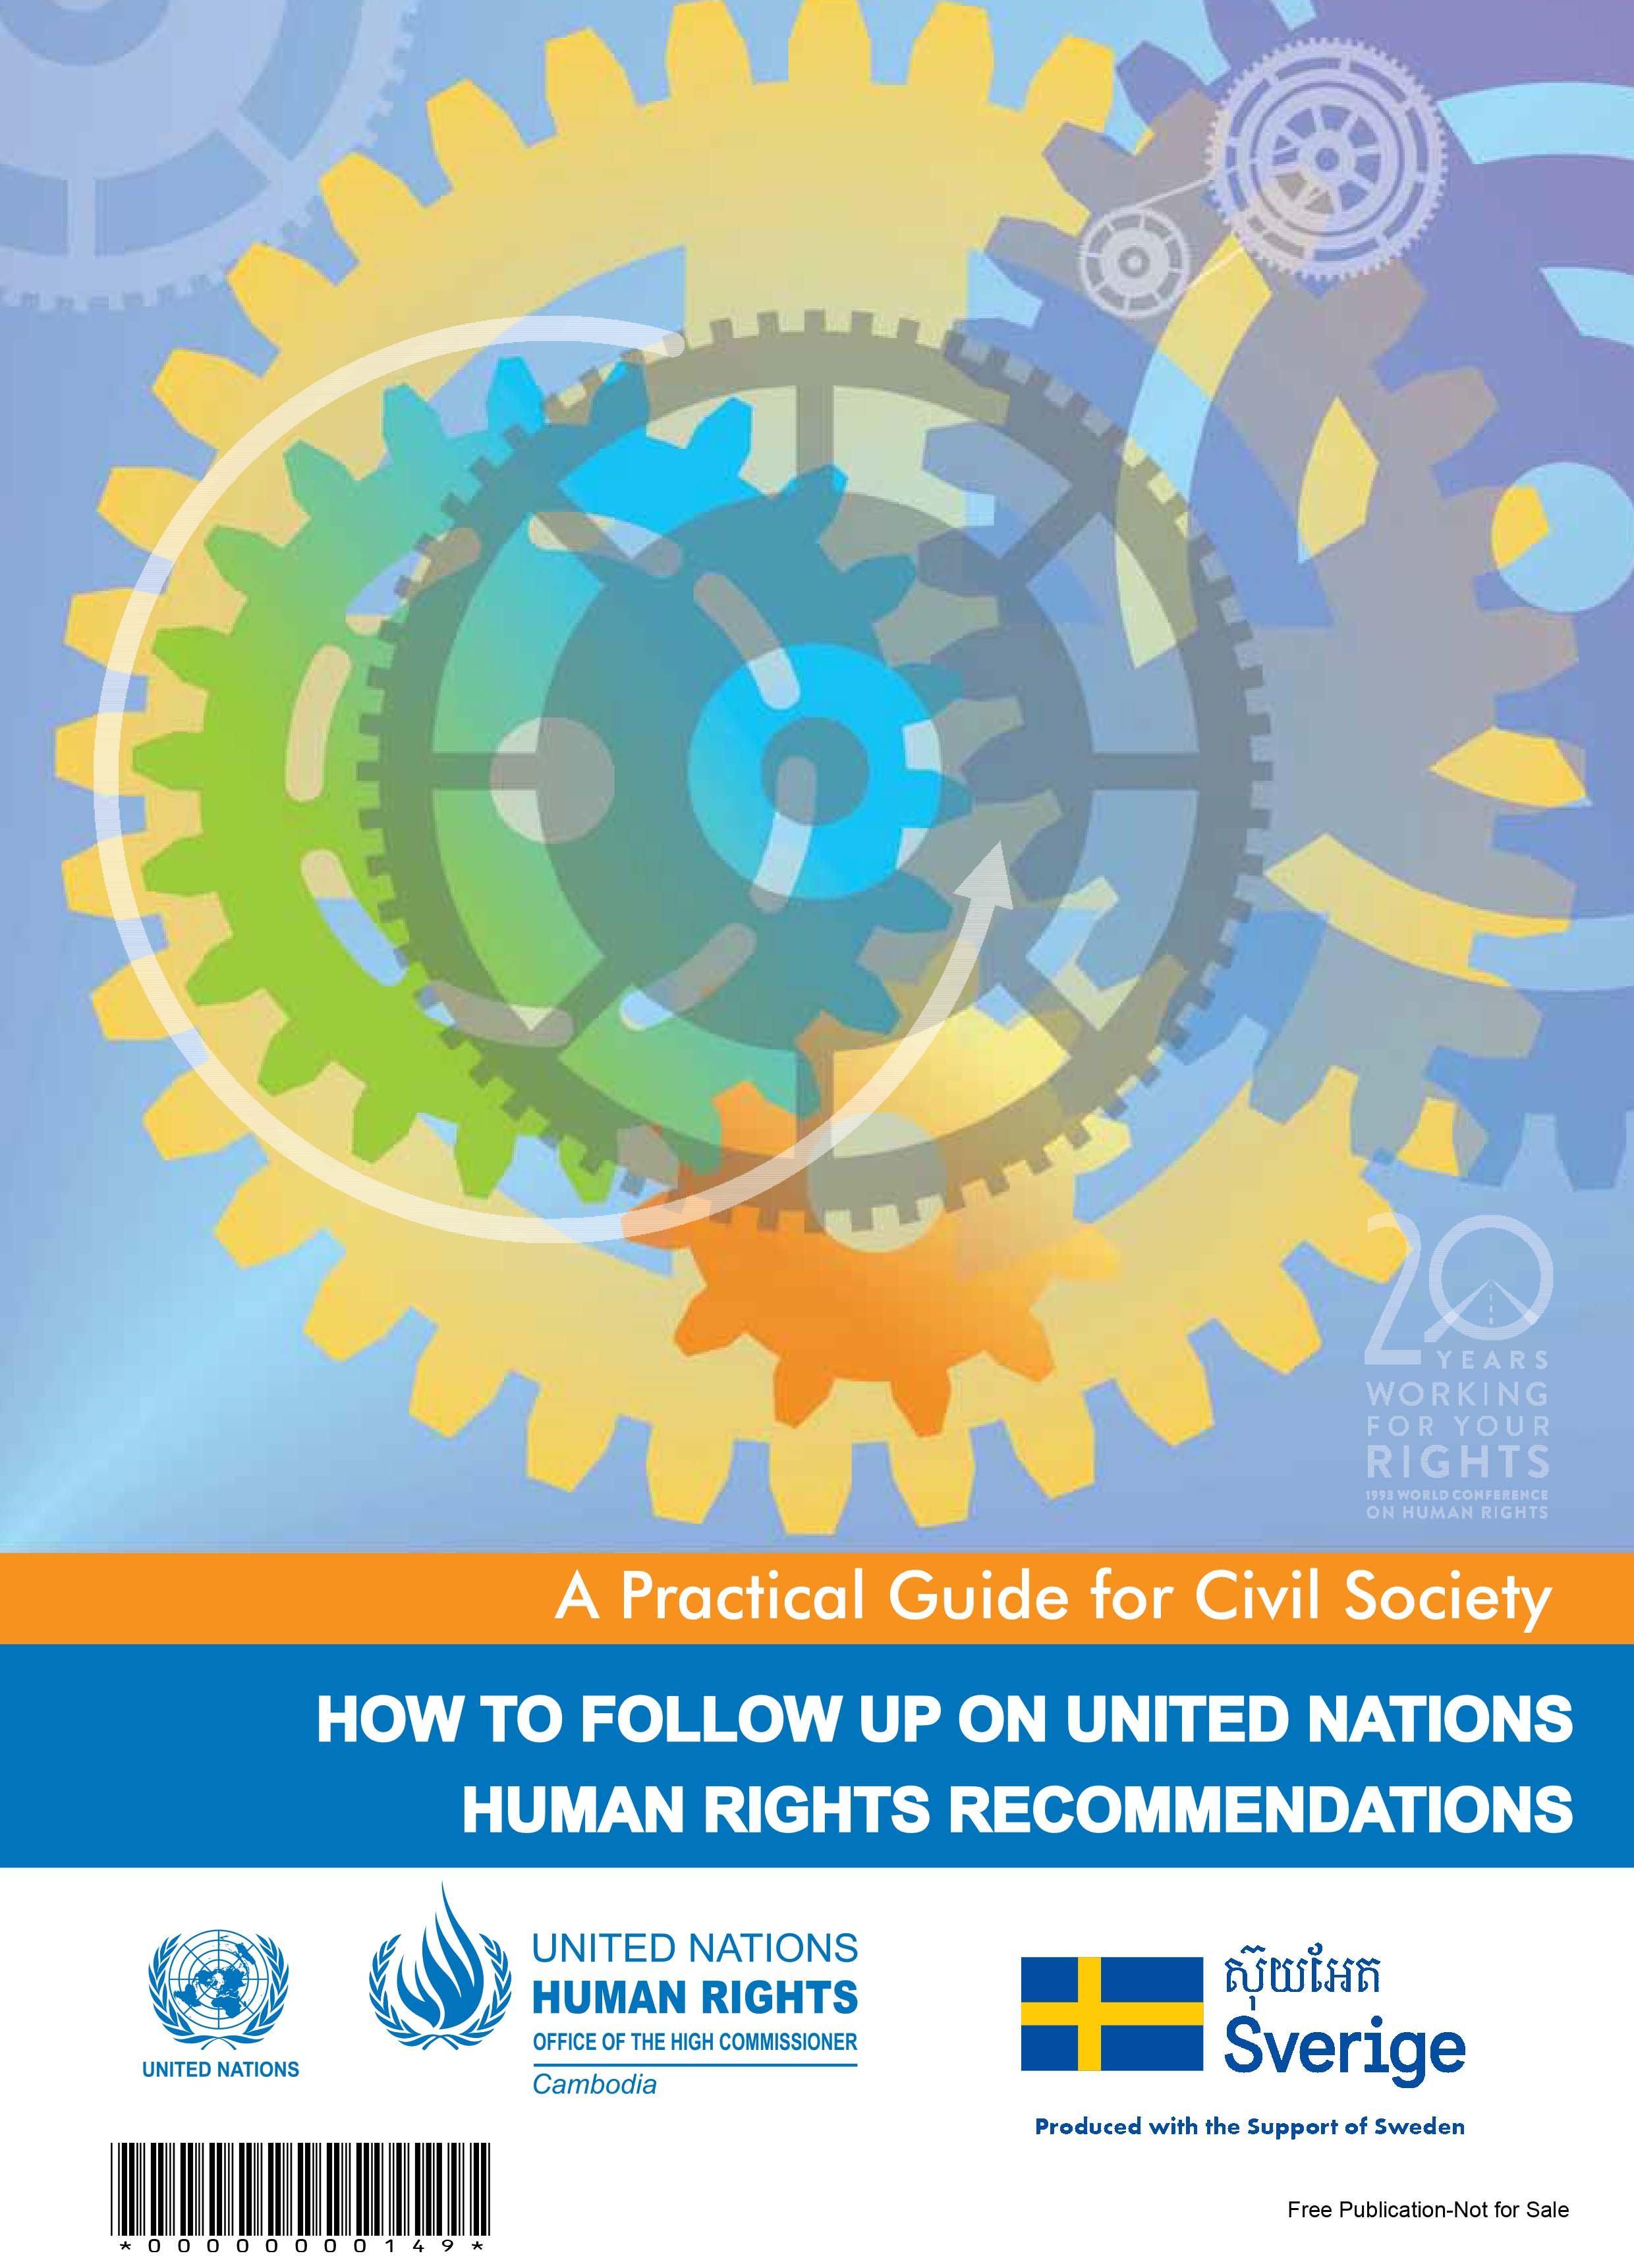 A Practical Guide for Civil Society How to follow up on United Nations Human Rights Recommandations